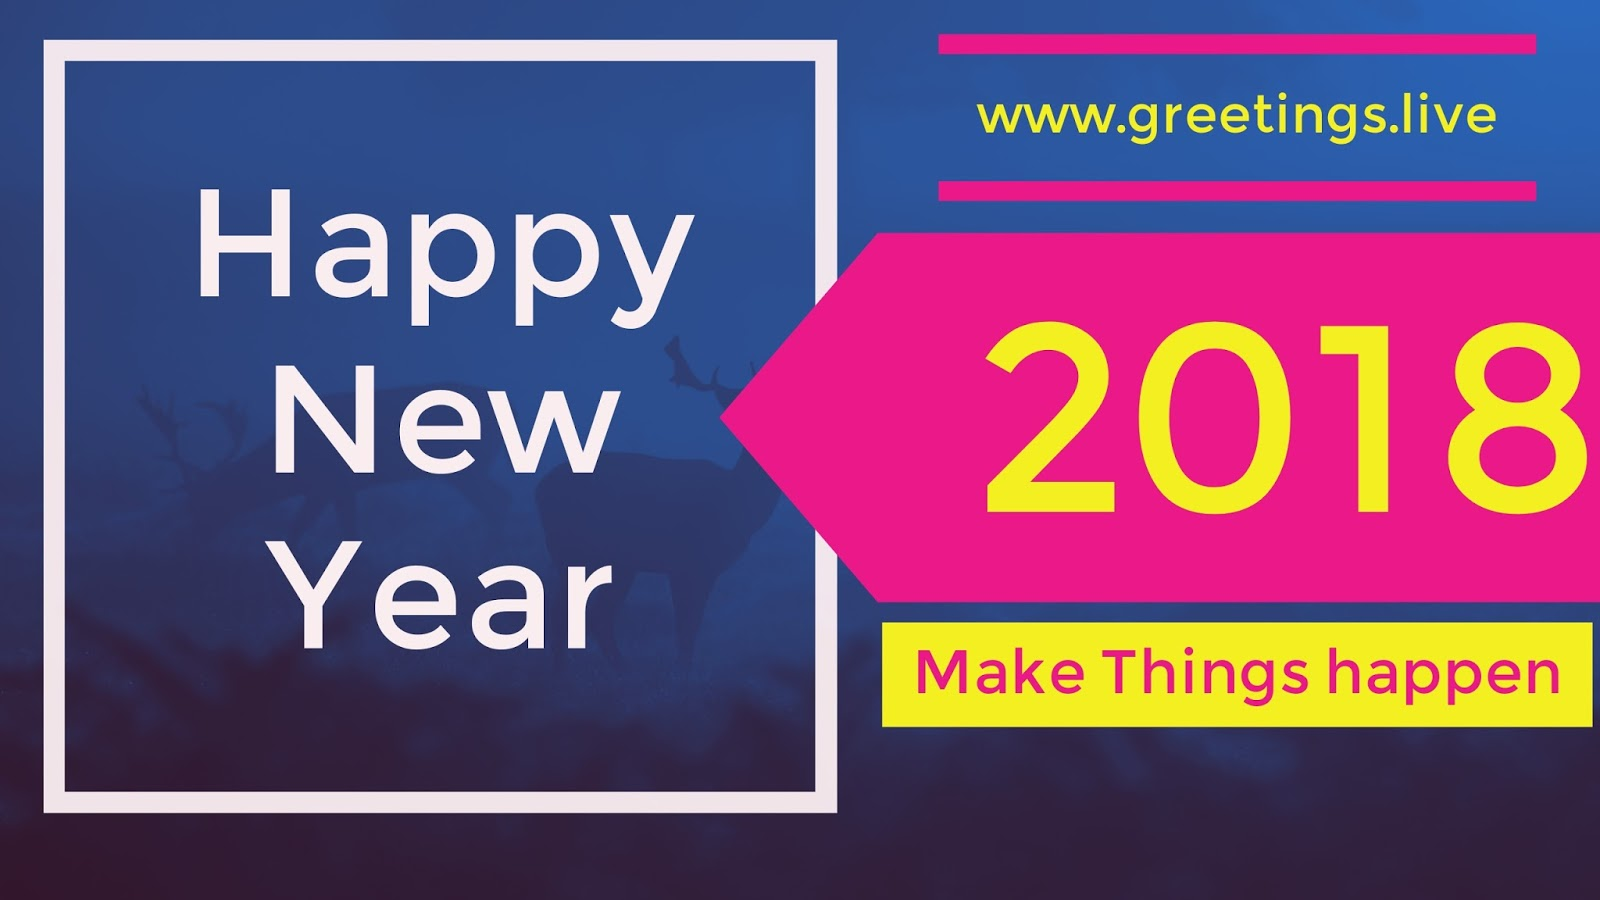 Telugu picture messages creative happy new year 2018 greeting cards creative happy new year 2018 greeting cards from greetingsve kristyandbryce Choice Image